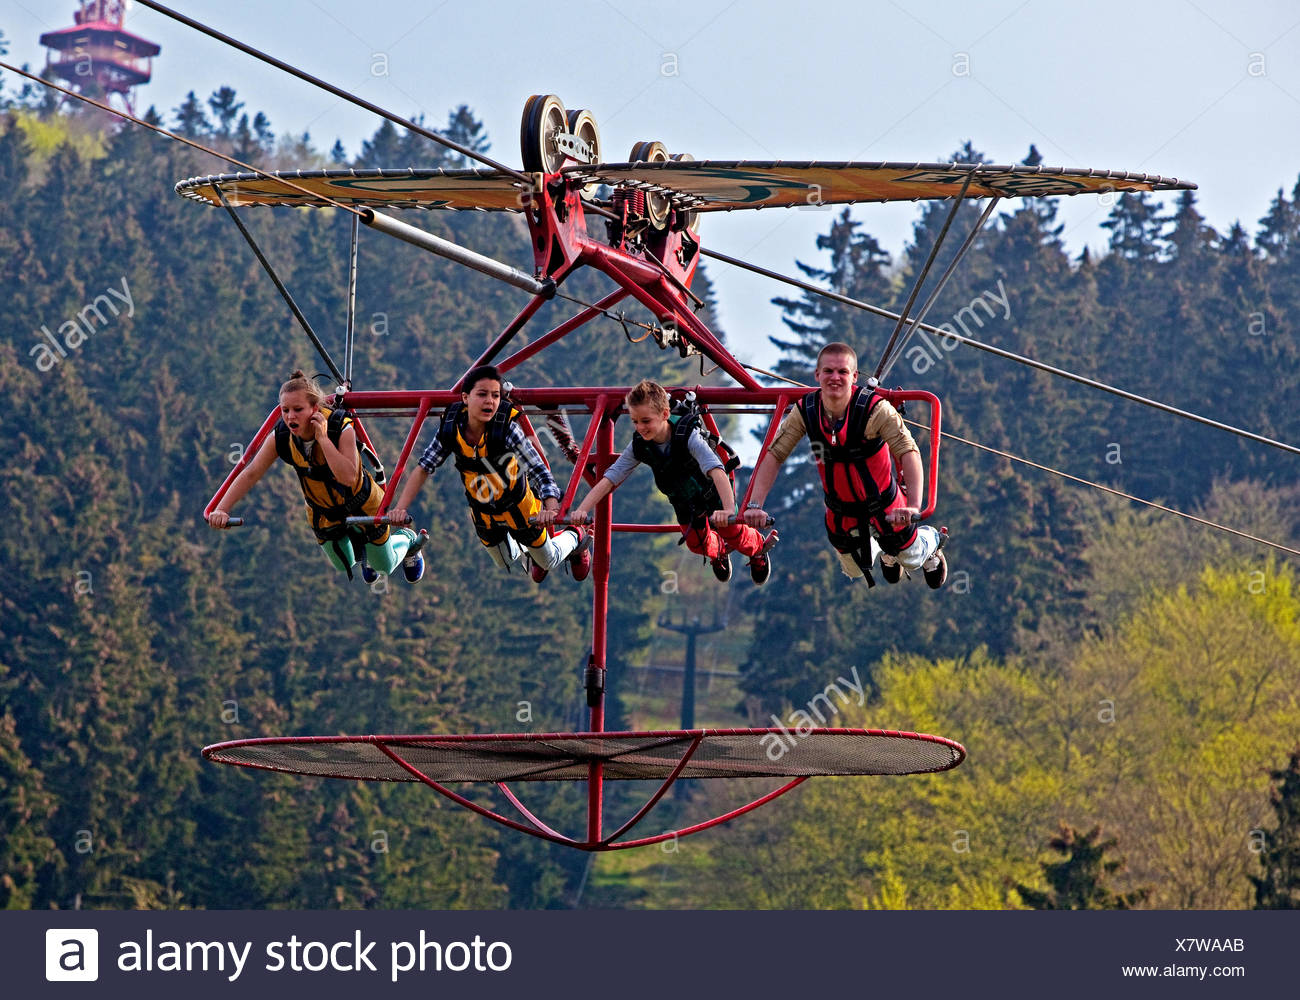 four young people in hang-gliding simulation, Germany, North Rhine-Westphalia, Sauerland, Bestwig - Stock Image